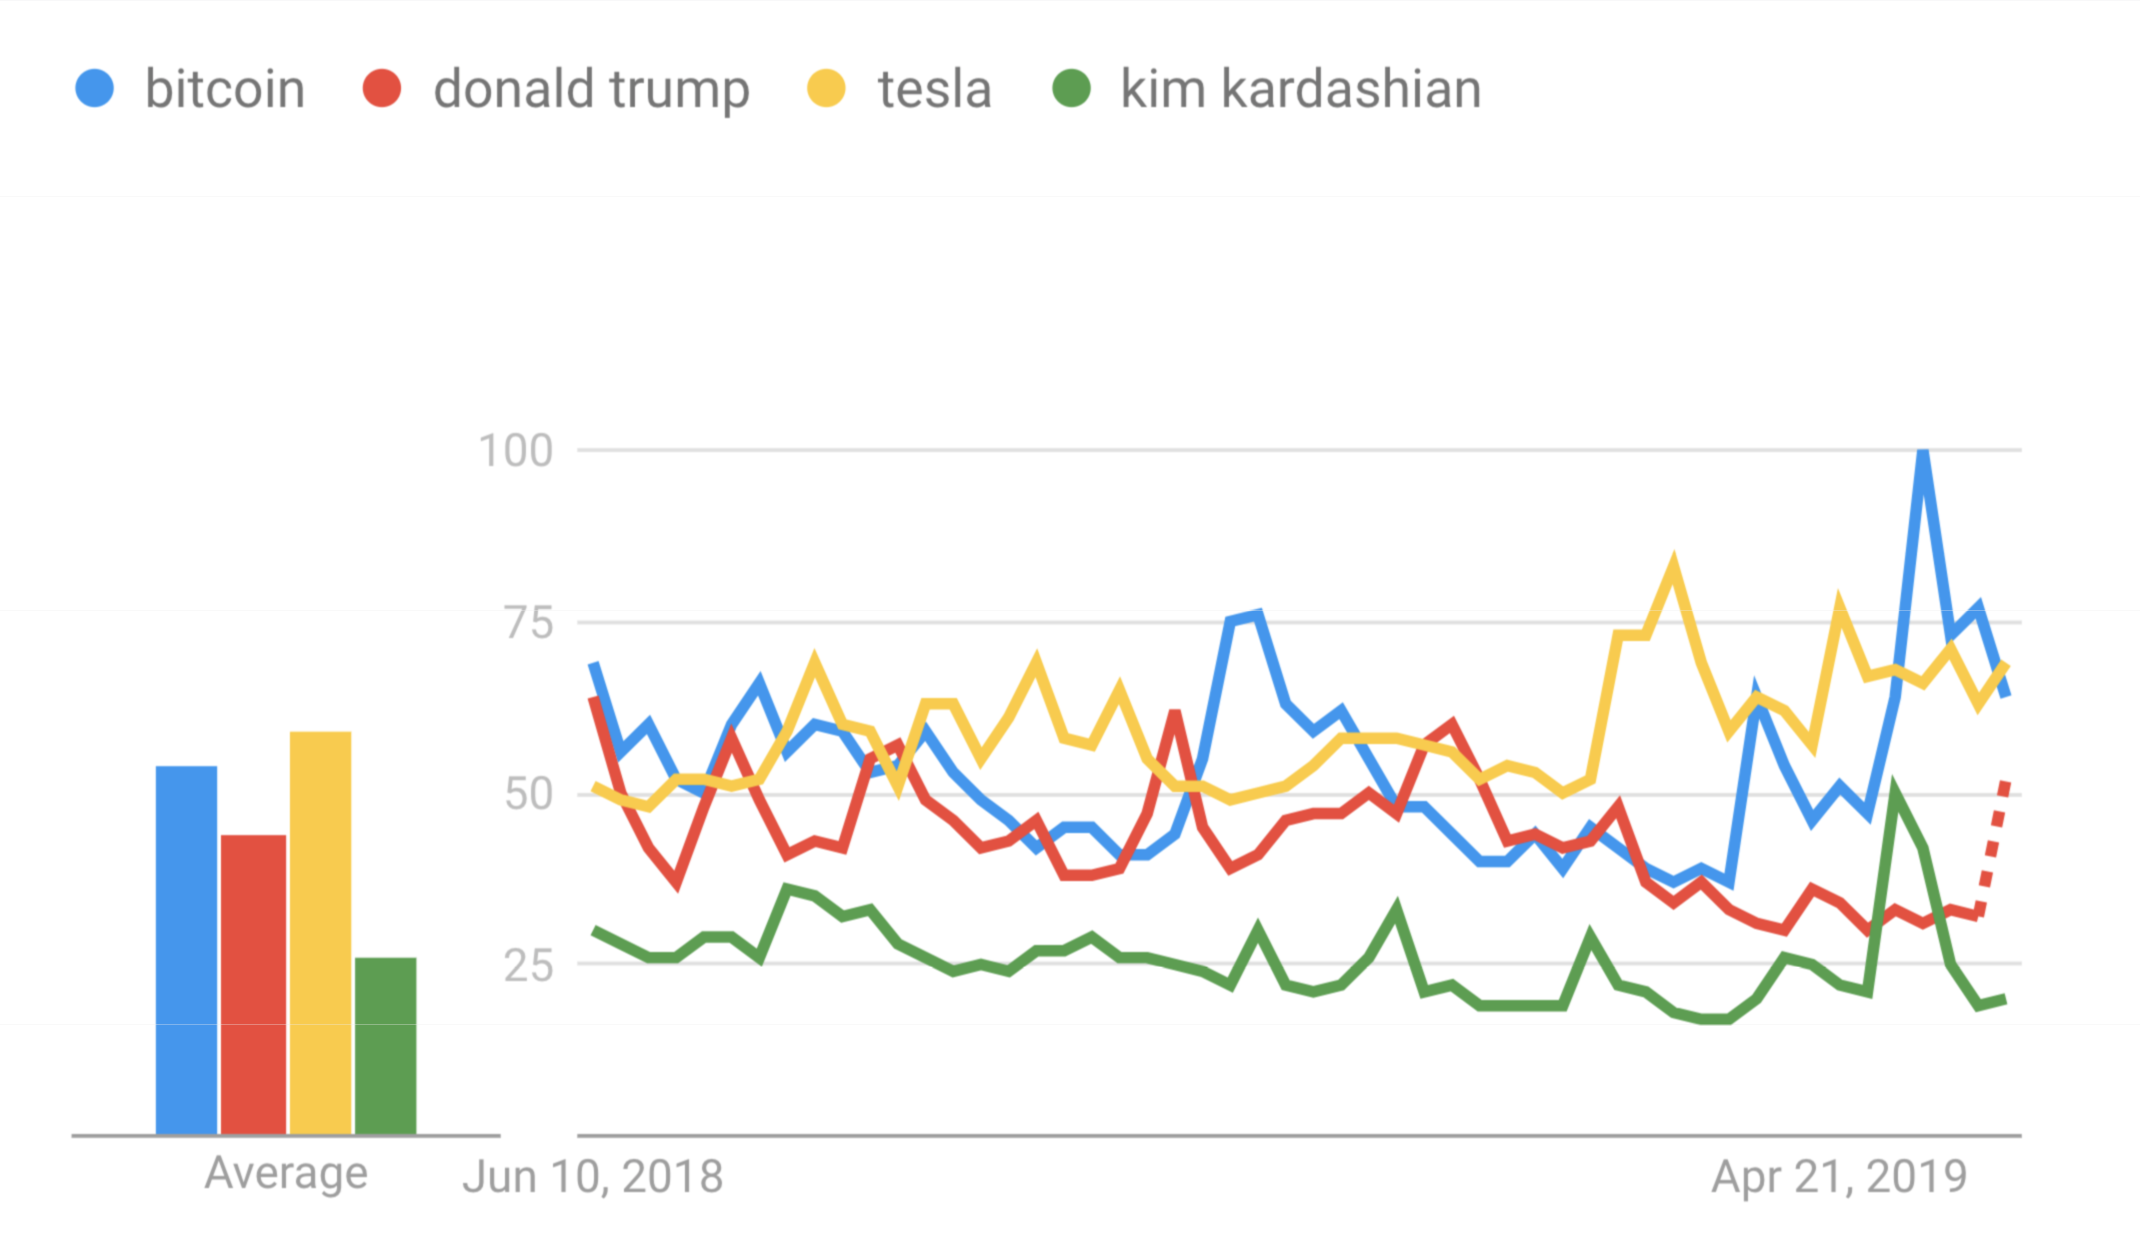 Bitcoin ahead of Trump, Tesla and Kardashian